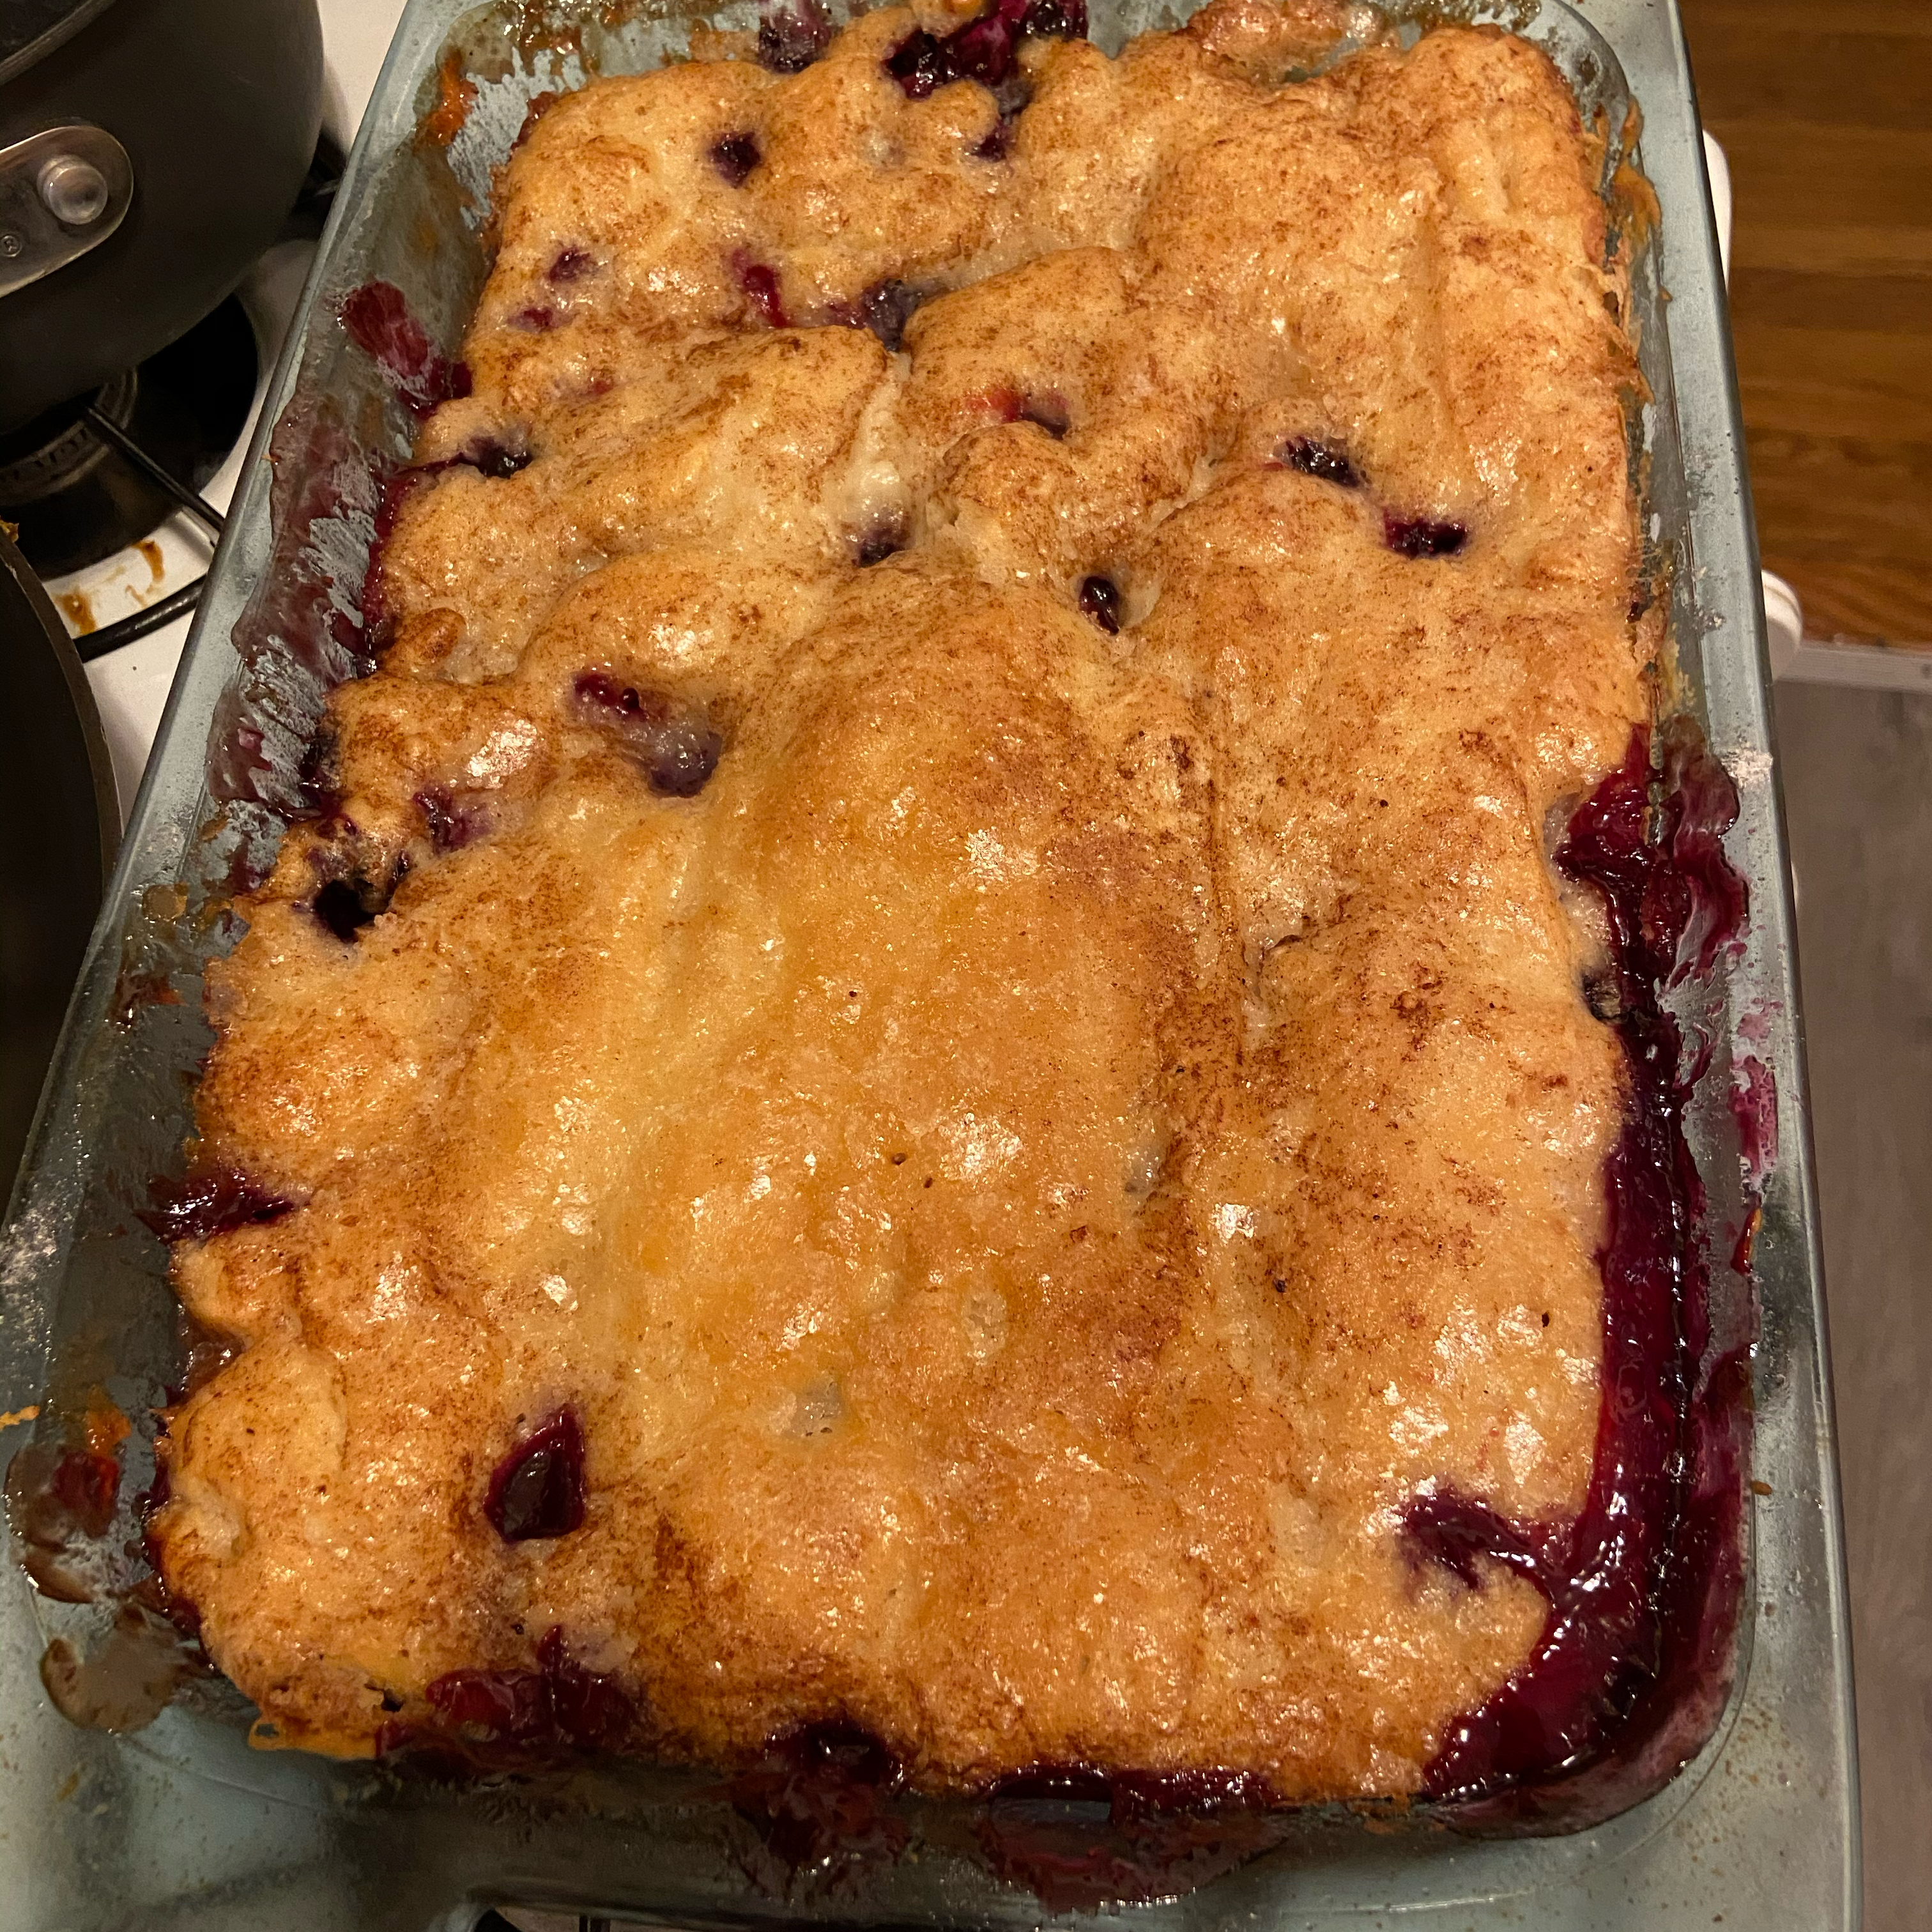 Yummy Blueberry Cobbler